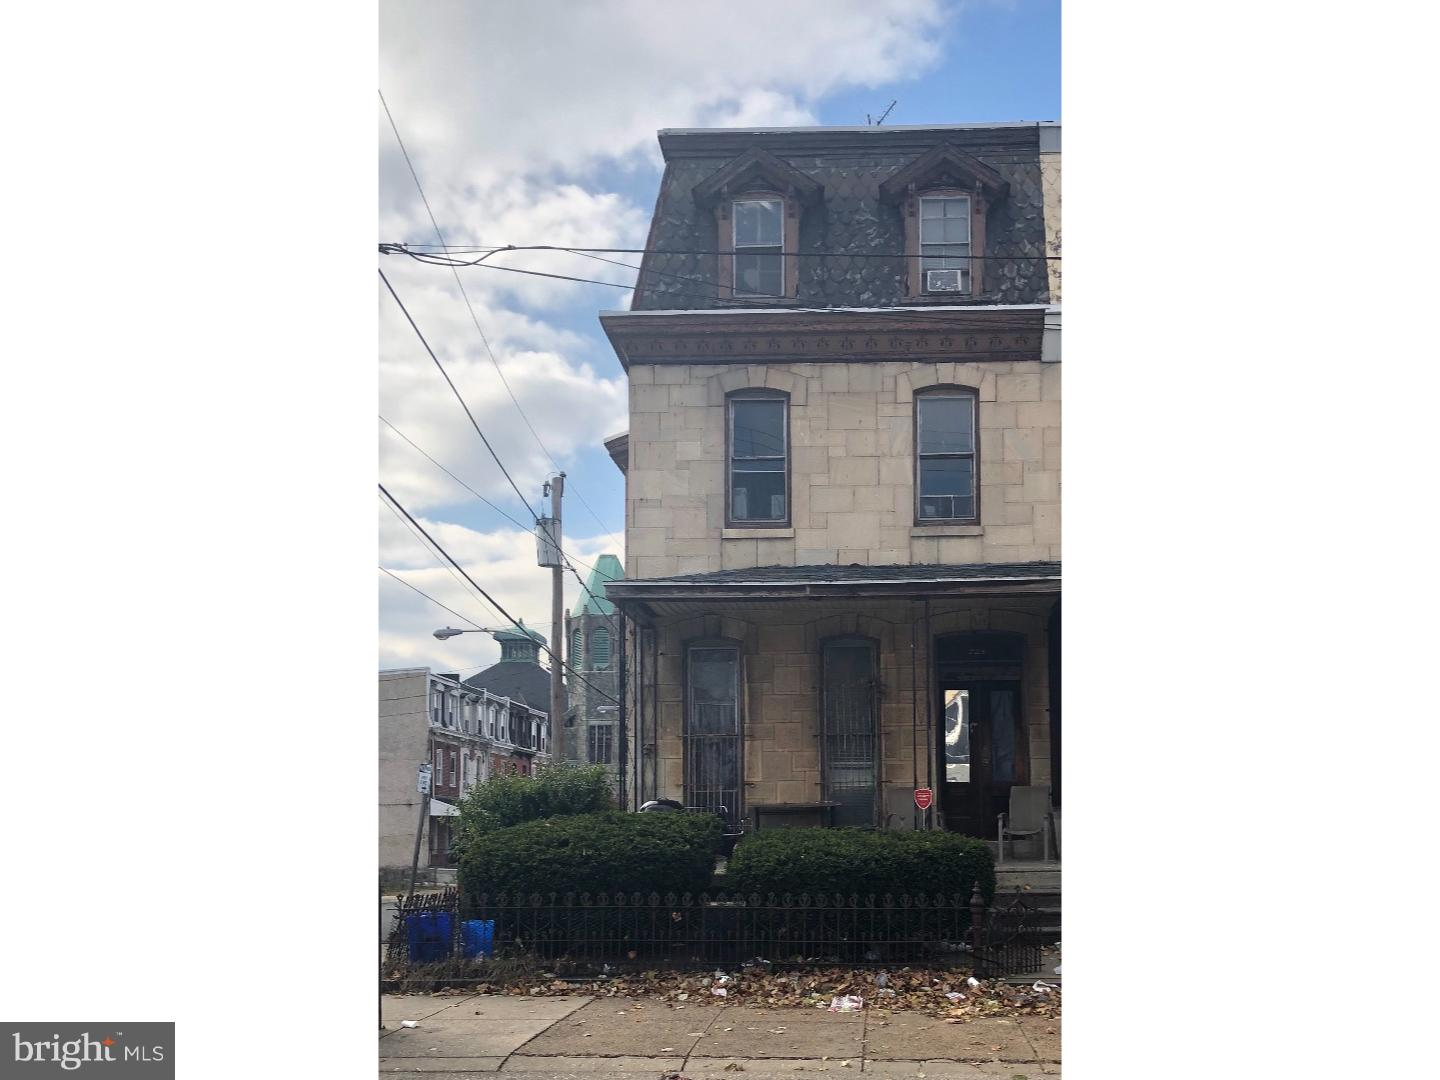 724 N 40TH STREET, PHILADELPHIA, PA 19104